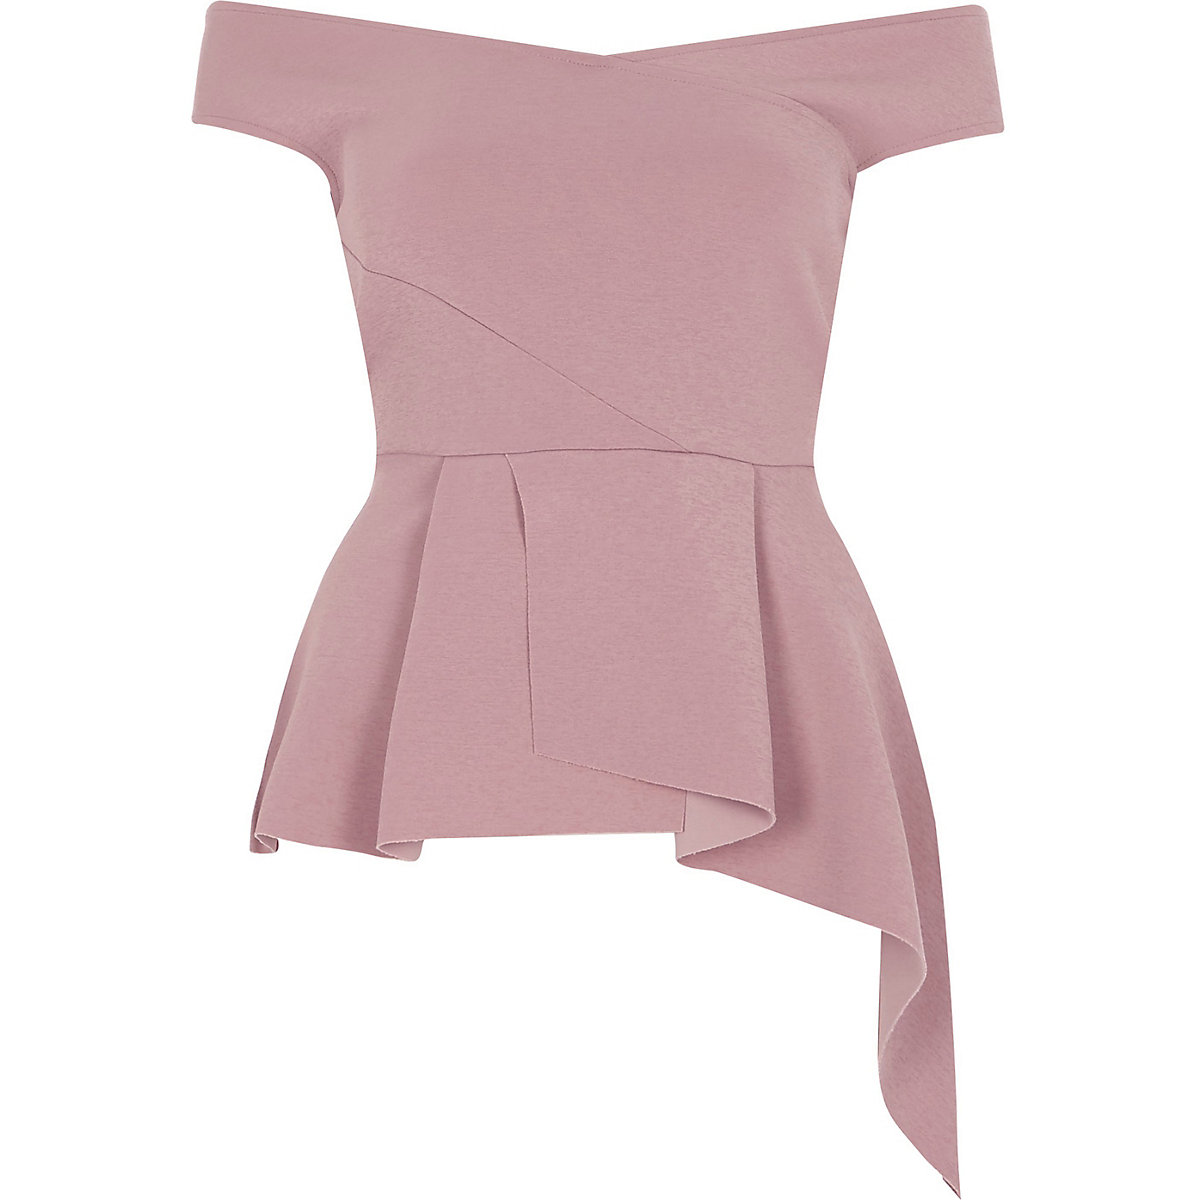 Light pink asymmetric peplum hem bardot top